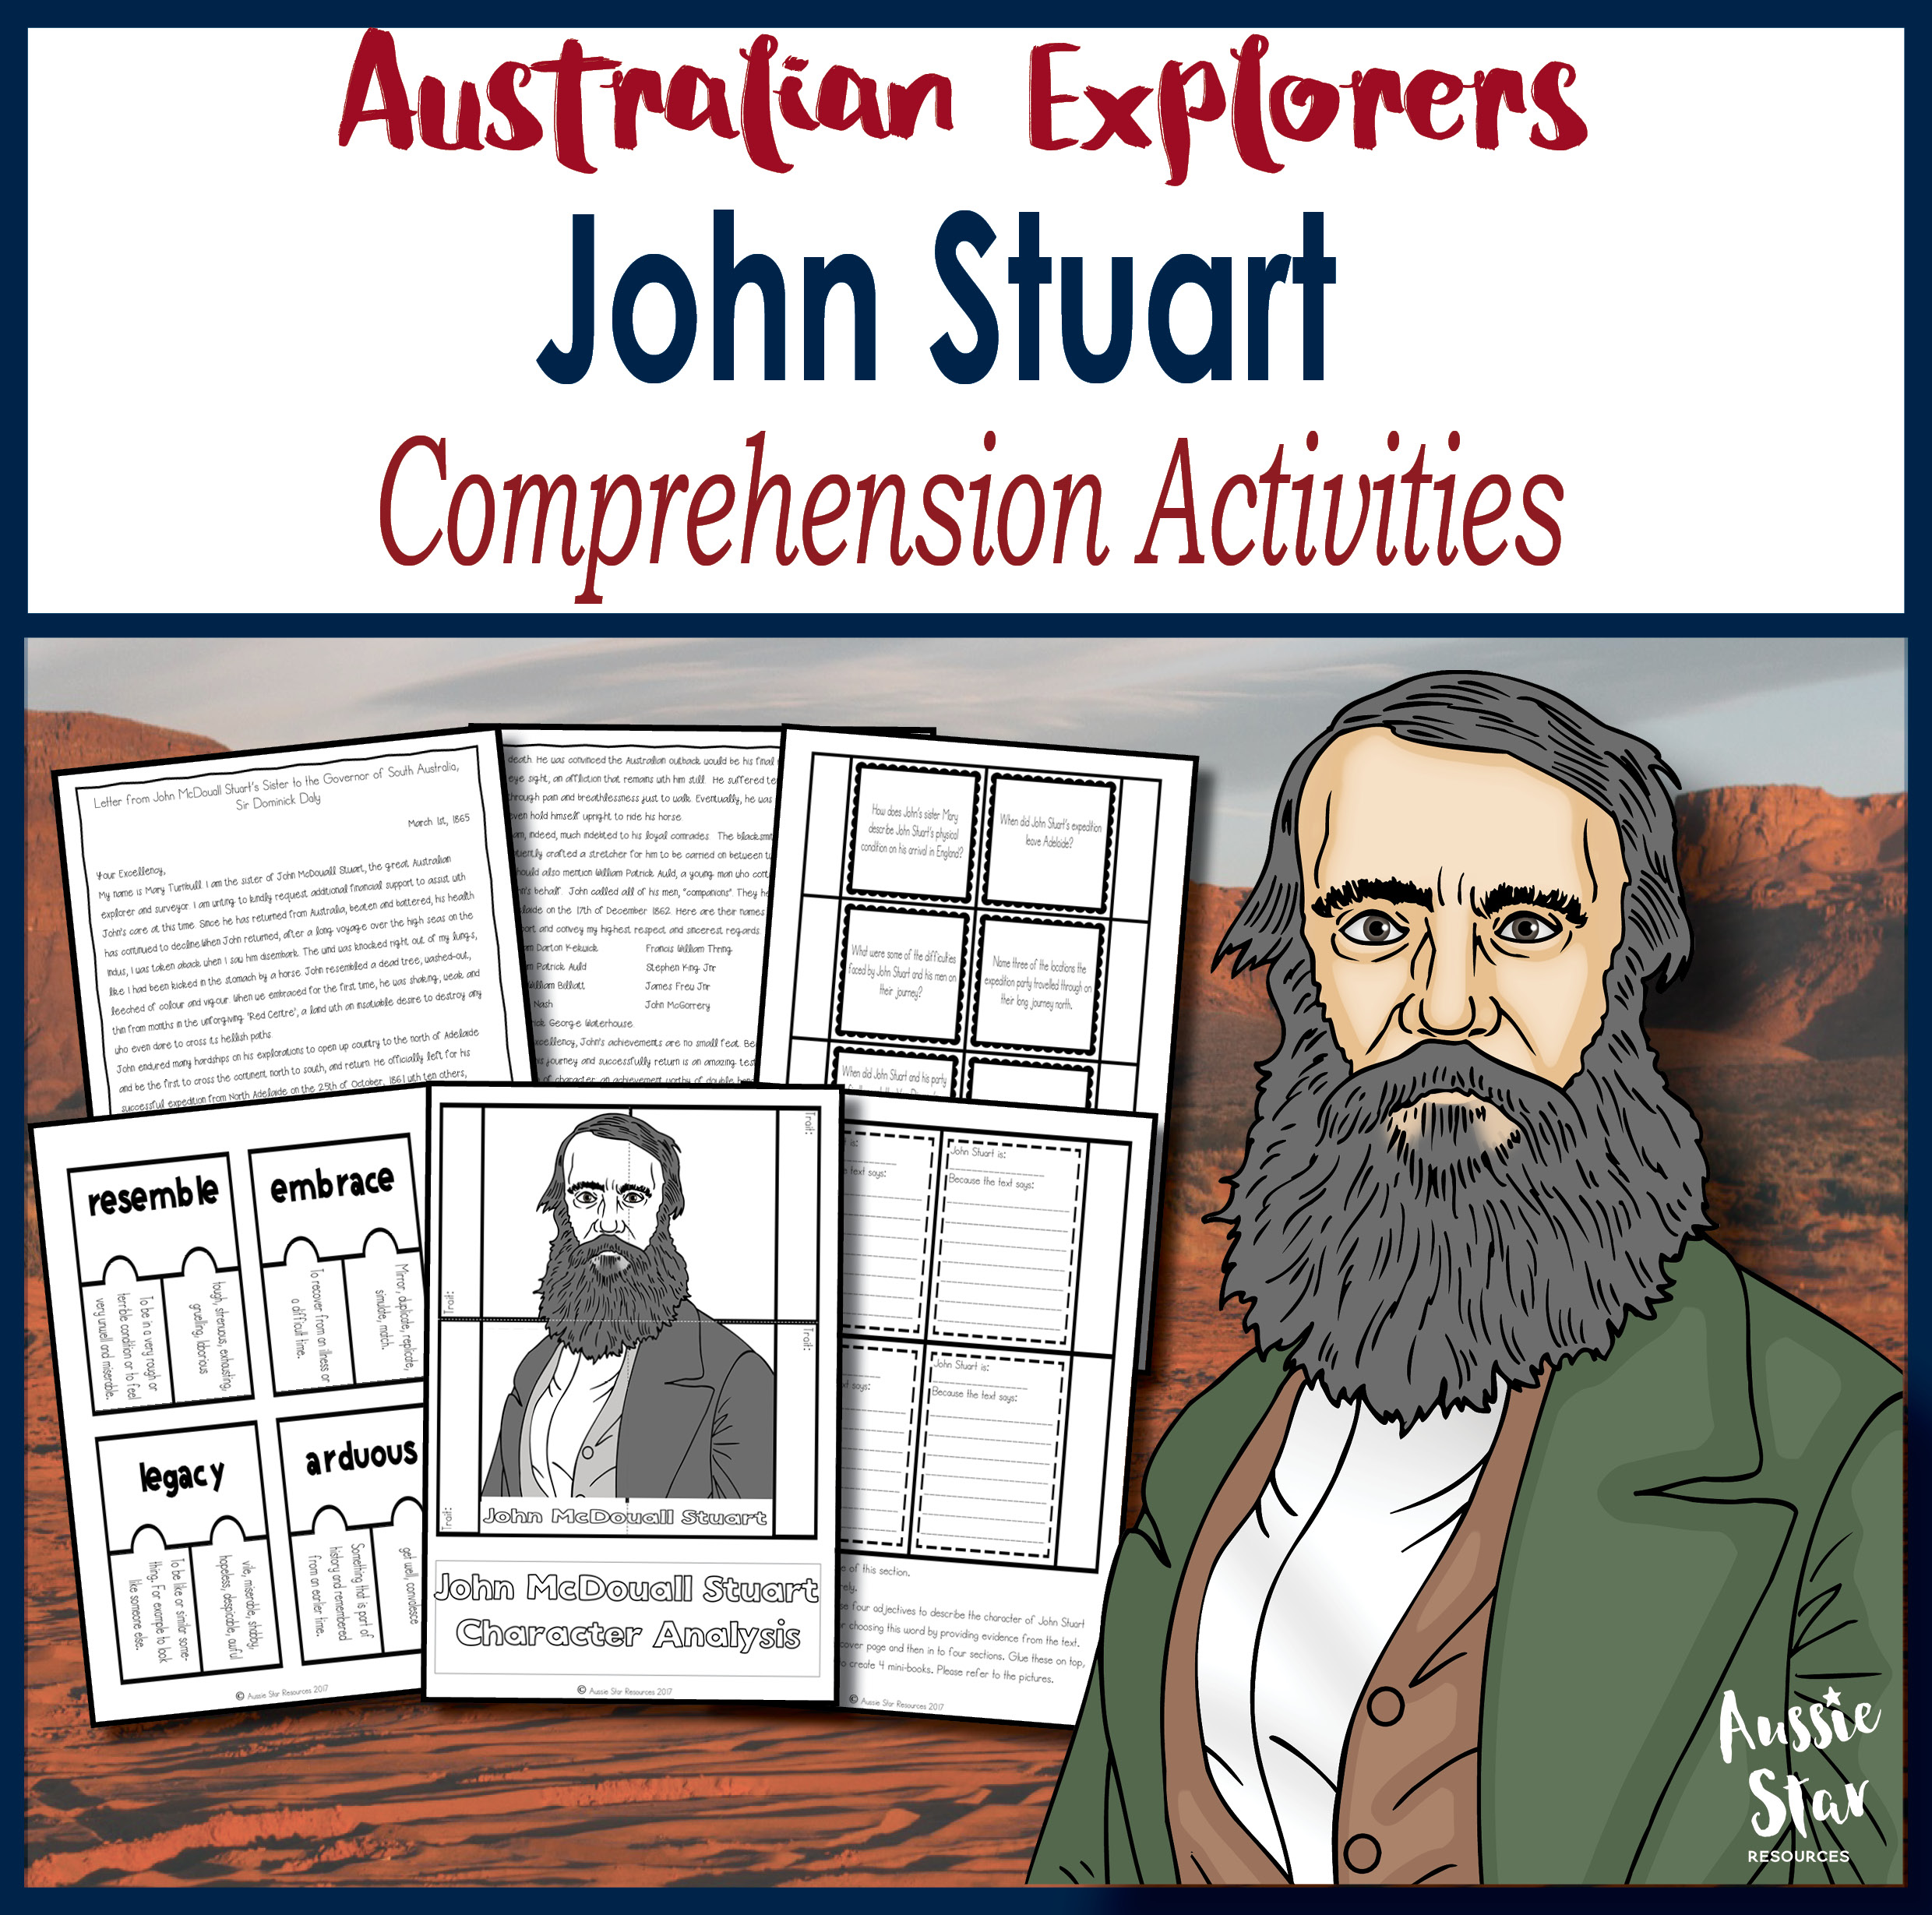 John Stuart Comprehension Activities